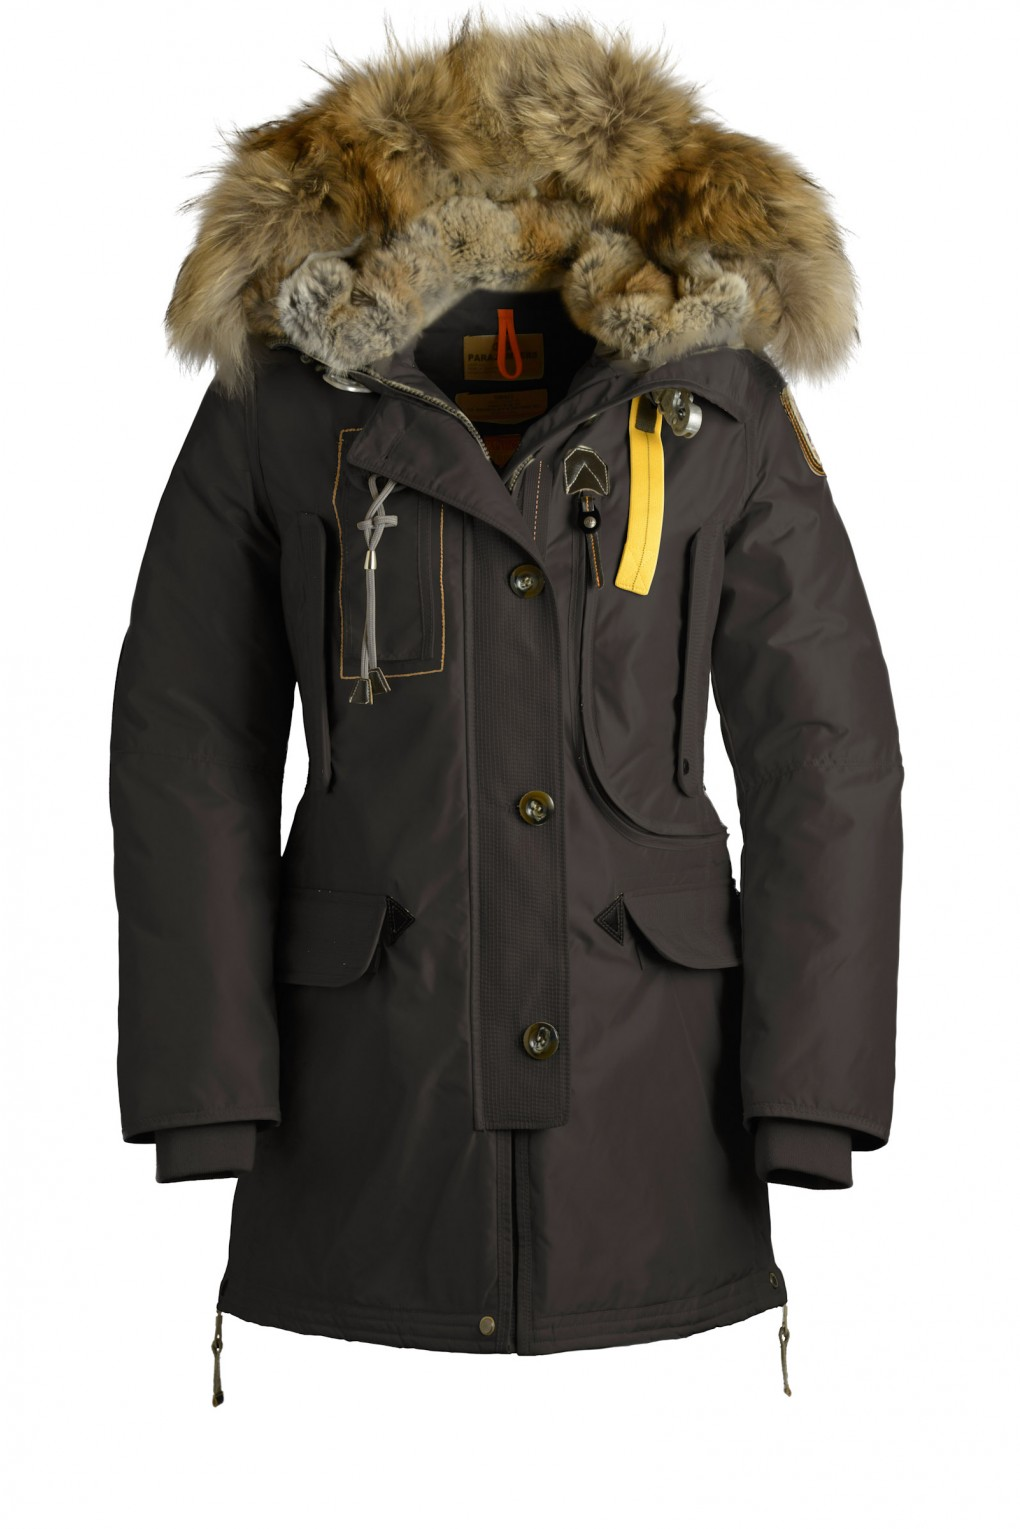 parajumpers KODIAK woman outerwear Brown